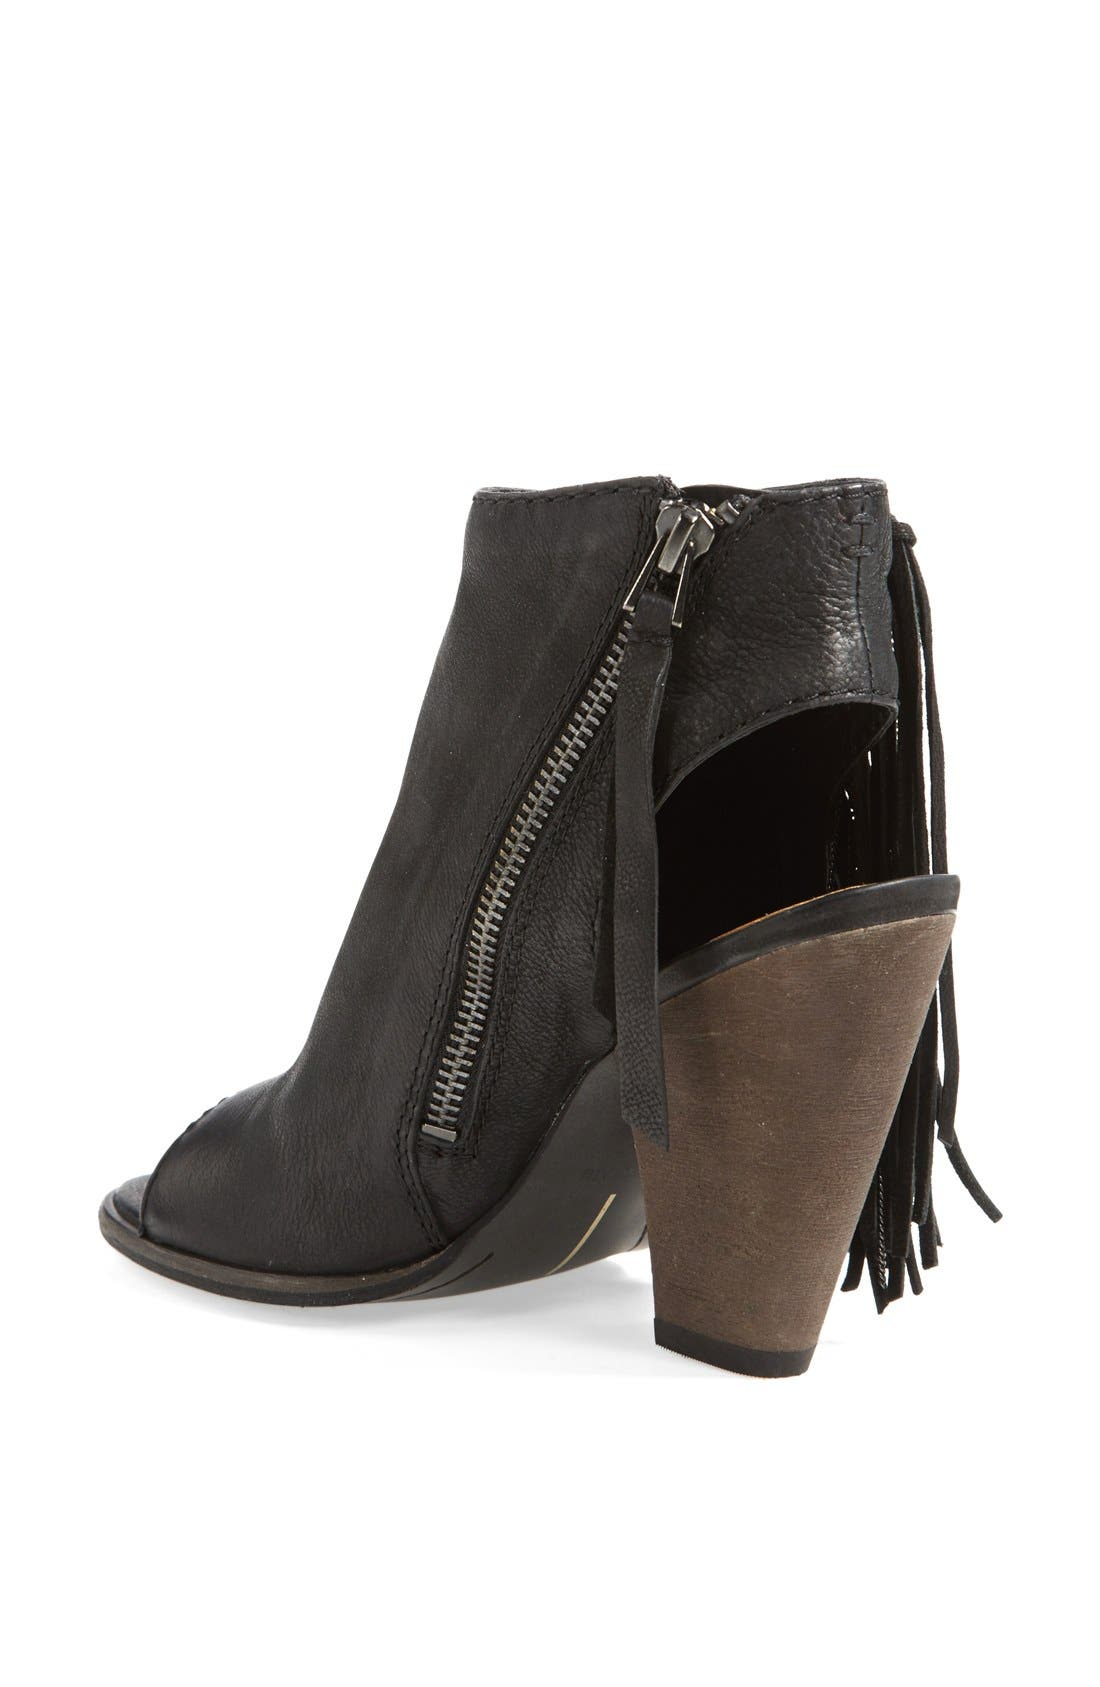 DOLCE VITA, 'Noralee' Bootie, Alternate thumbnail 3, color, 001